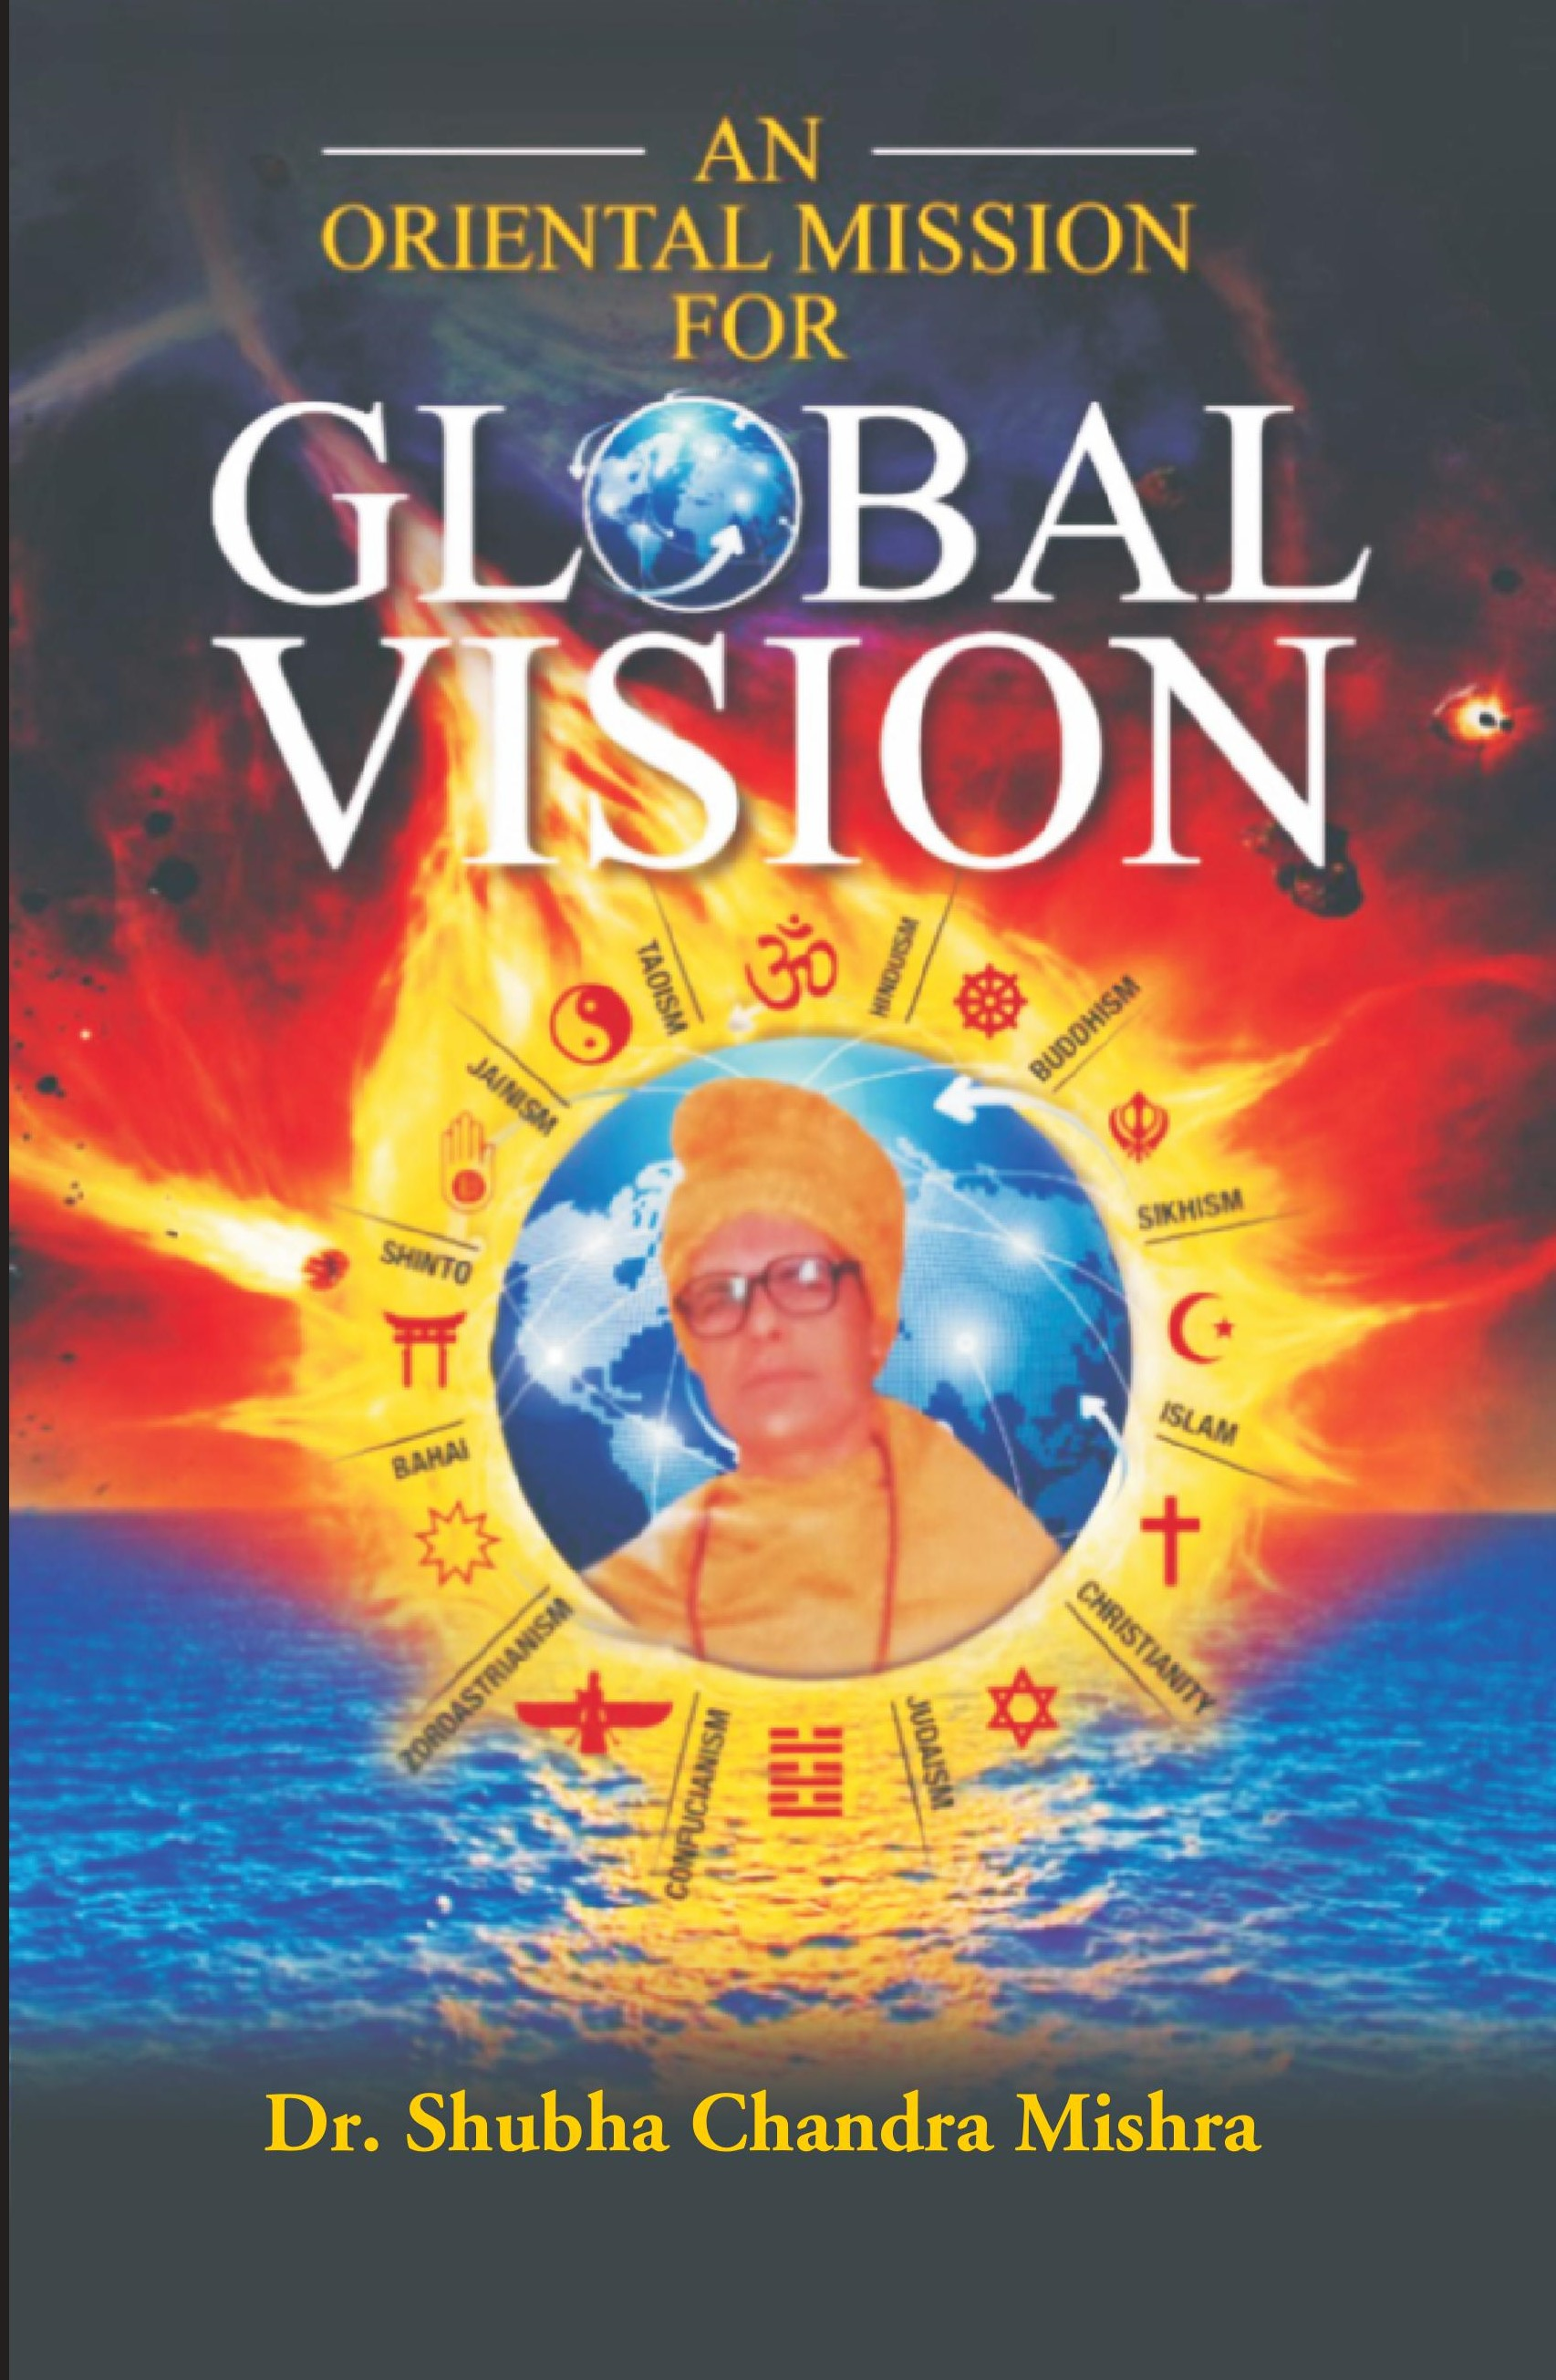 An Oriental Mission for Global Vision